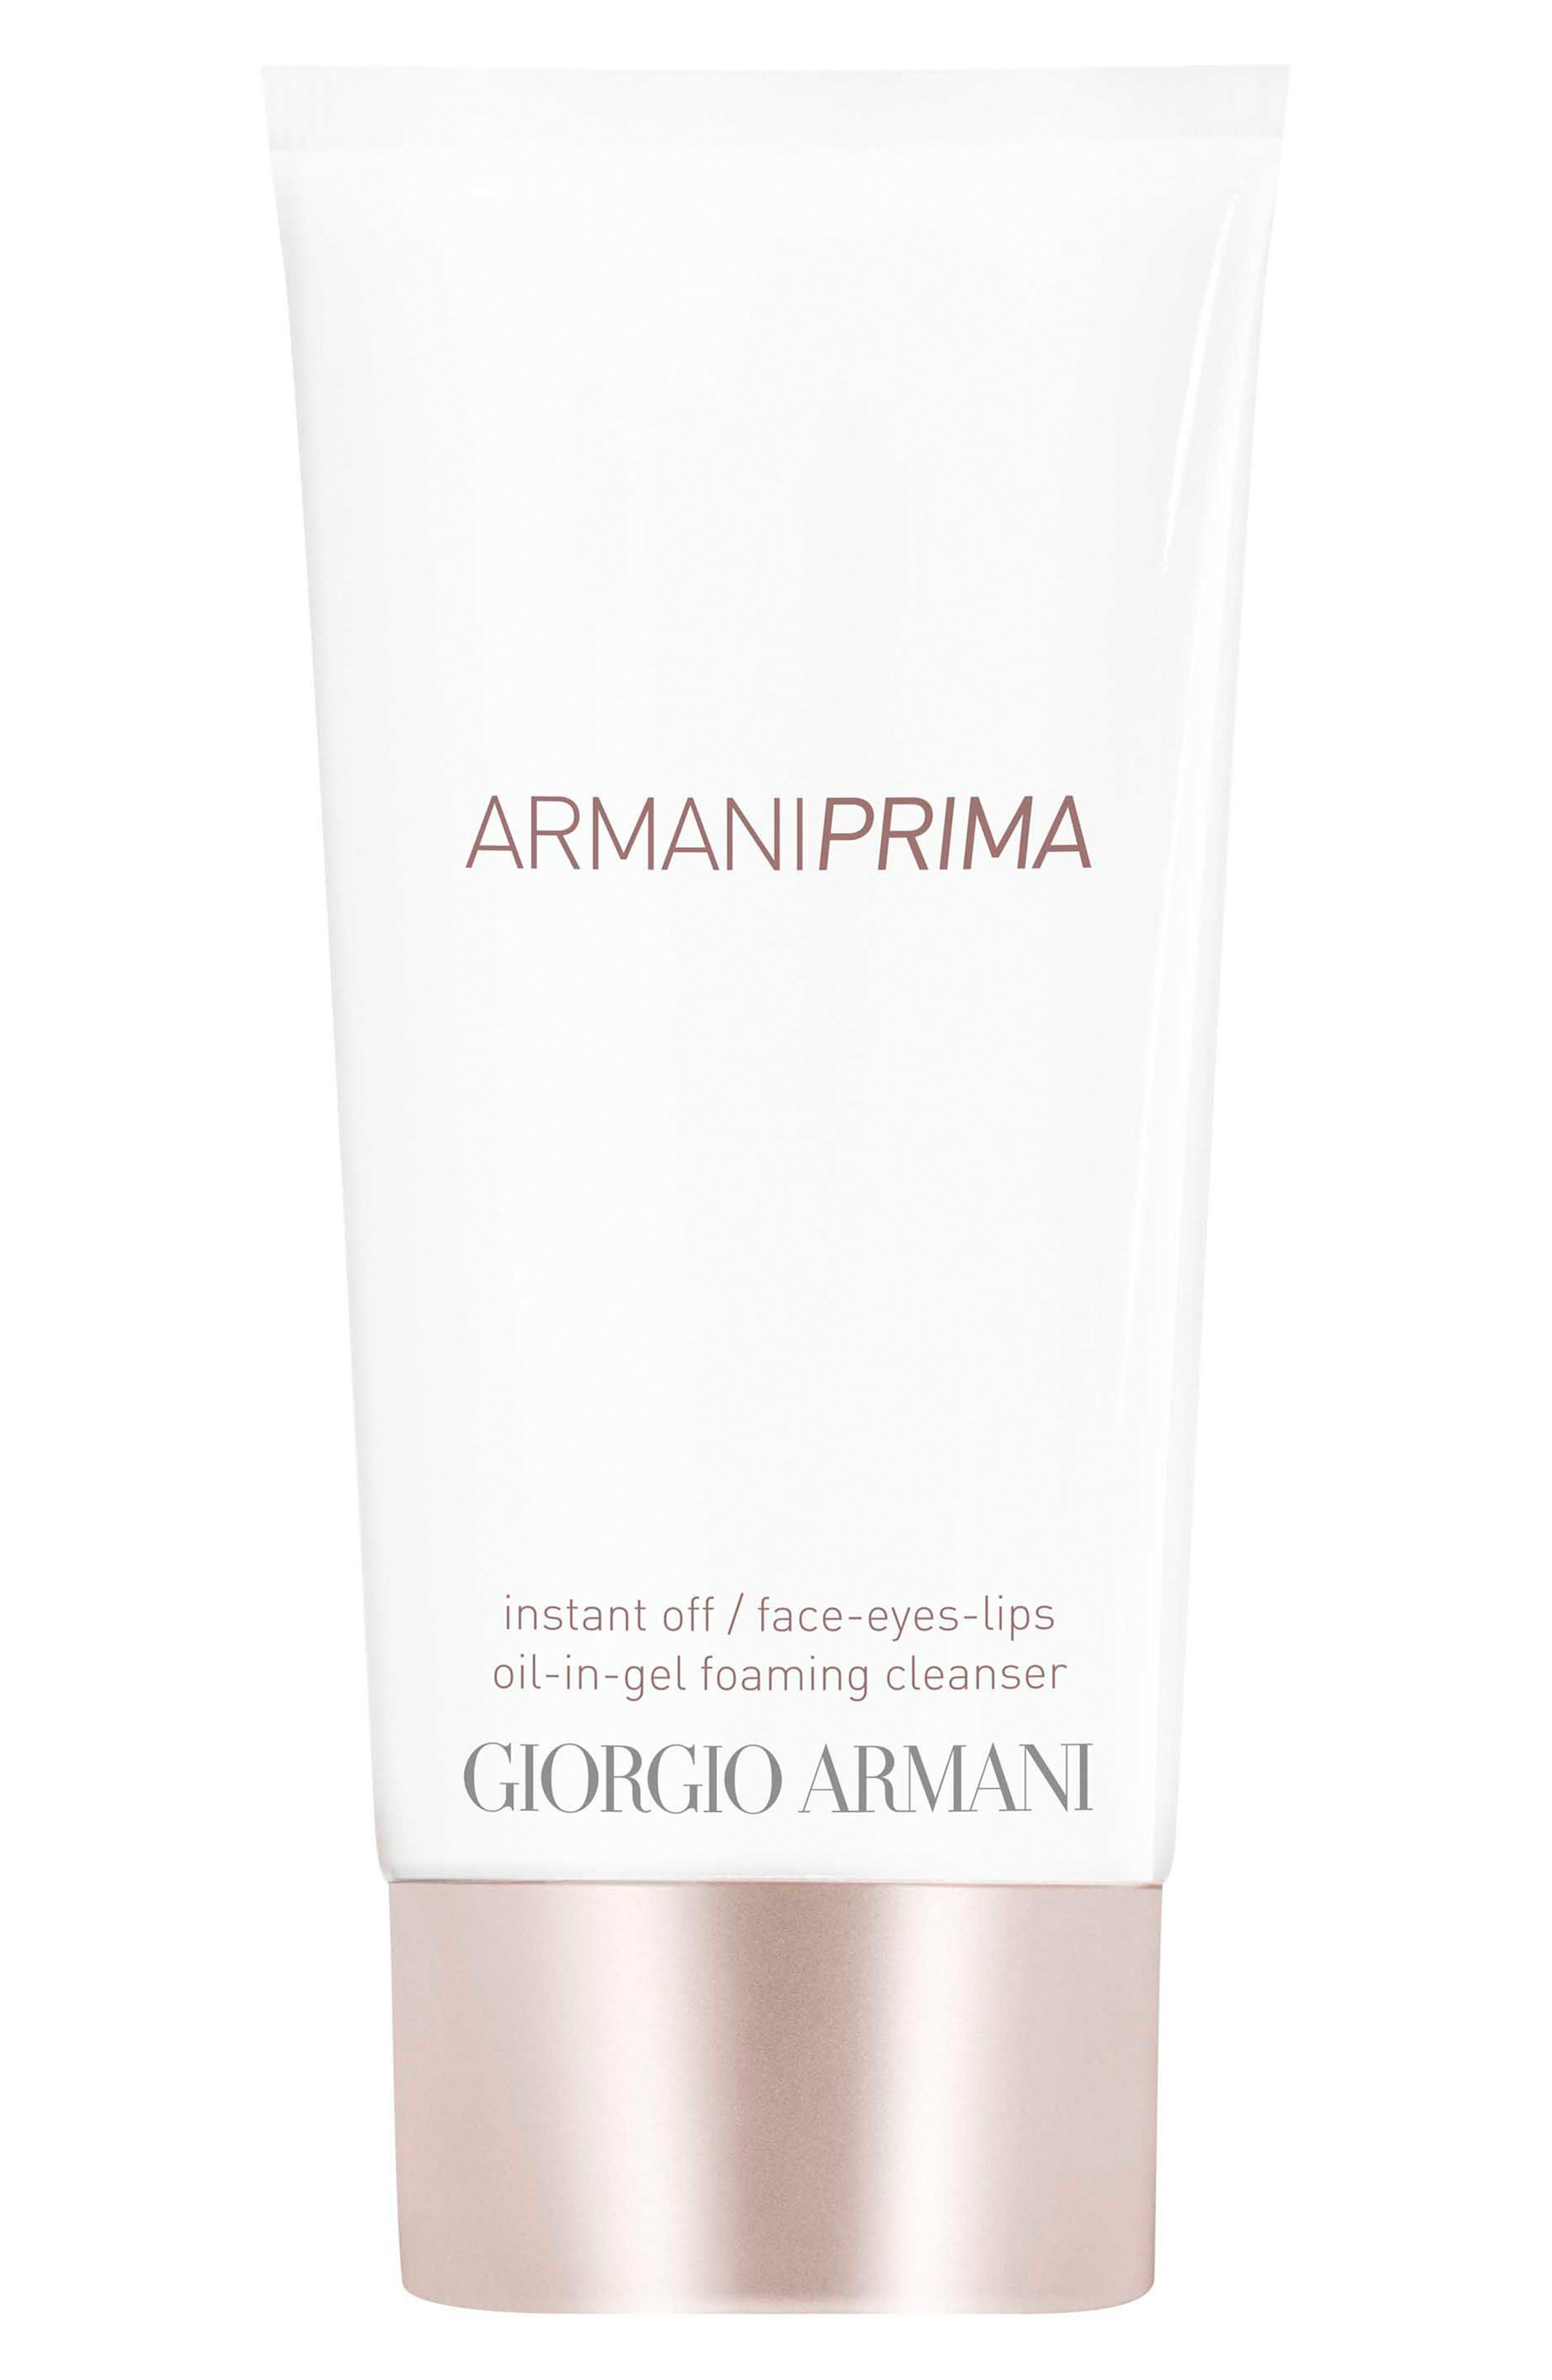 Prima Instant Off Face, Eyes & Lips Oil-in-Gel Foaming Cleanser,                             Main thumbnail 1, color,                             NO COLOR